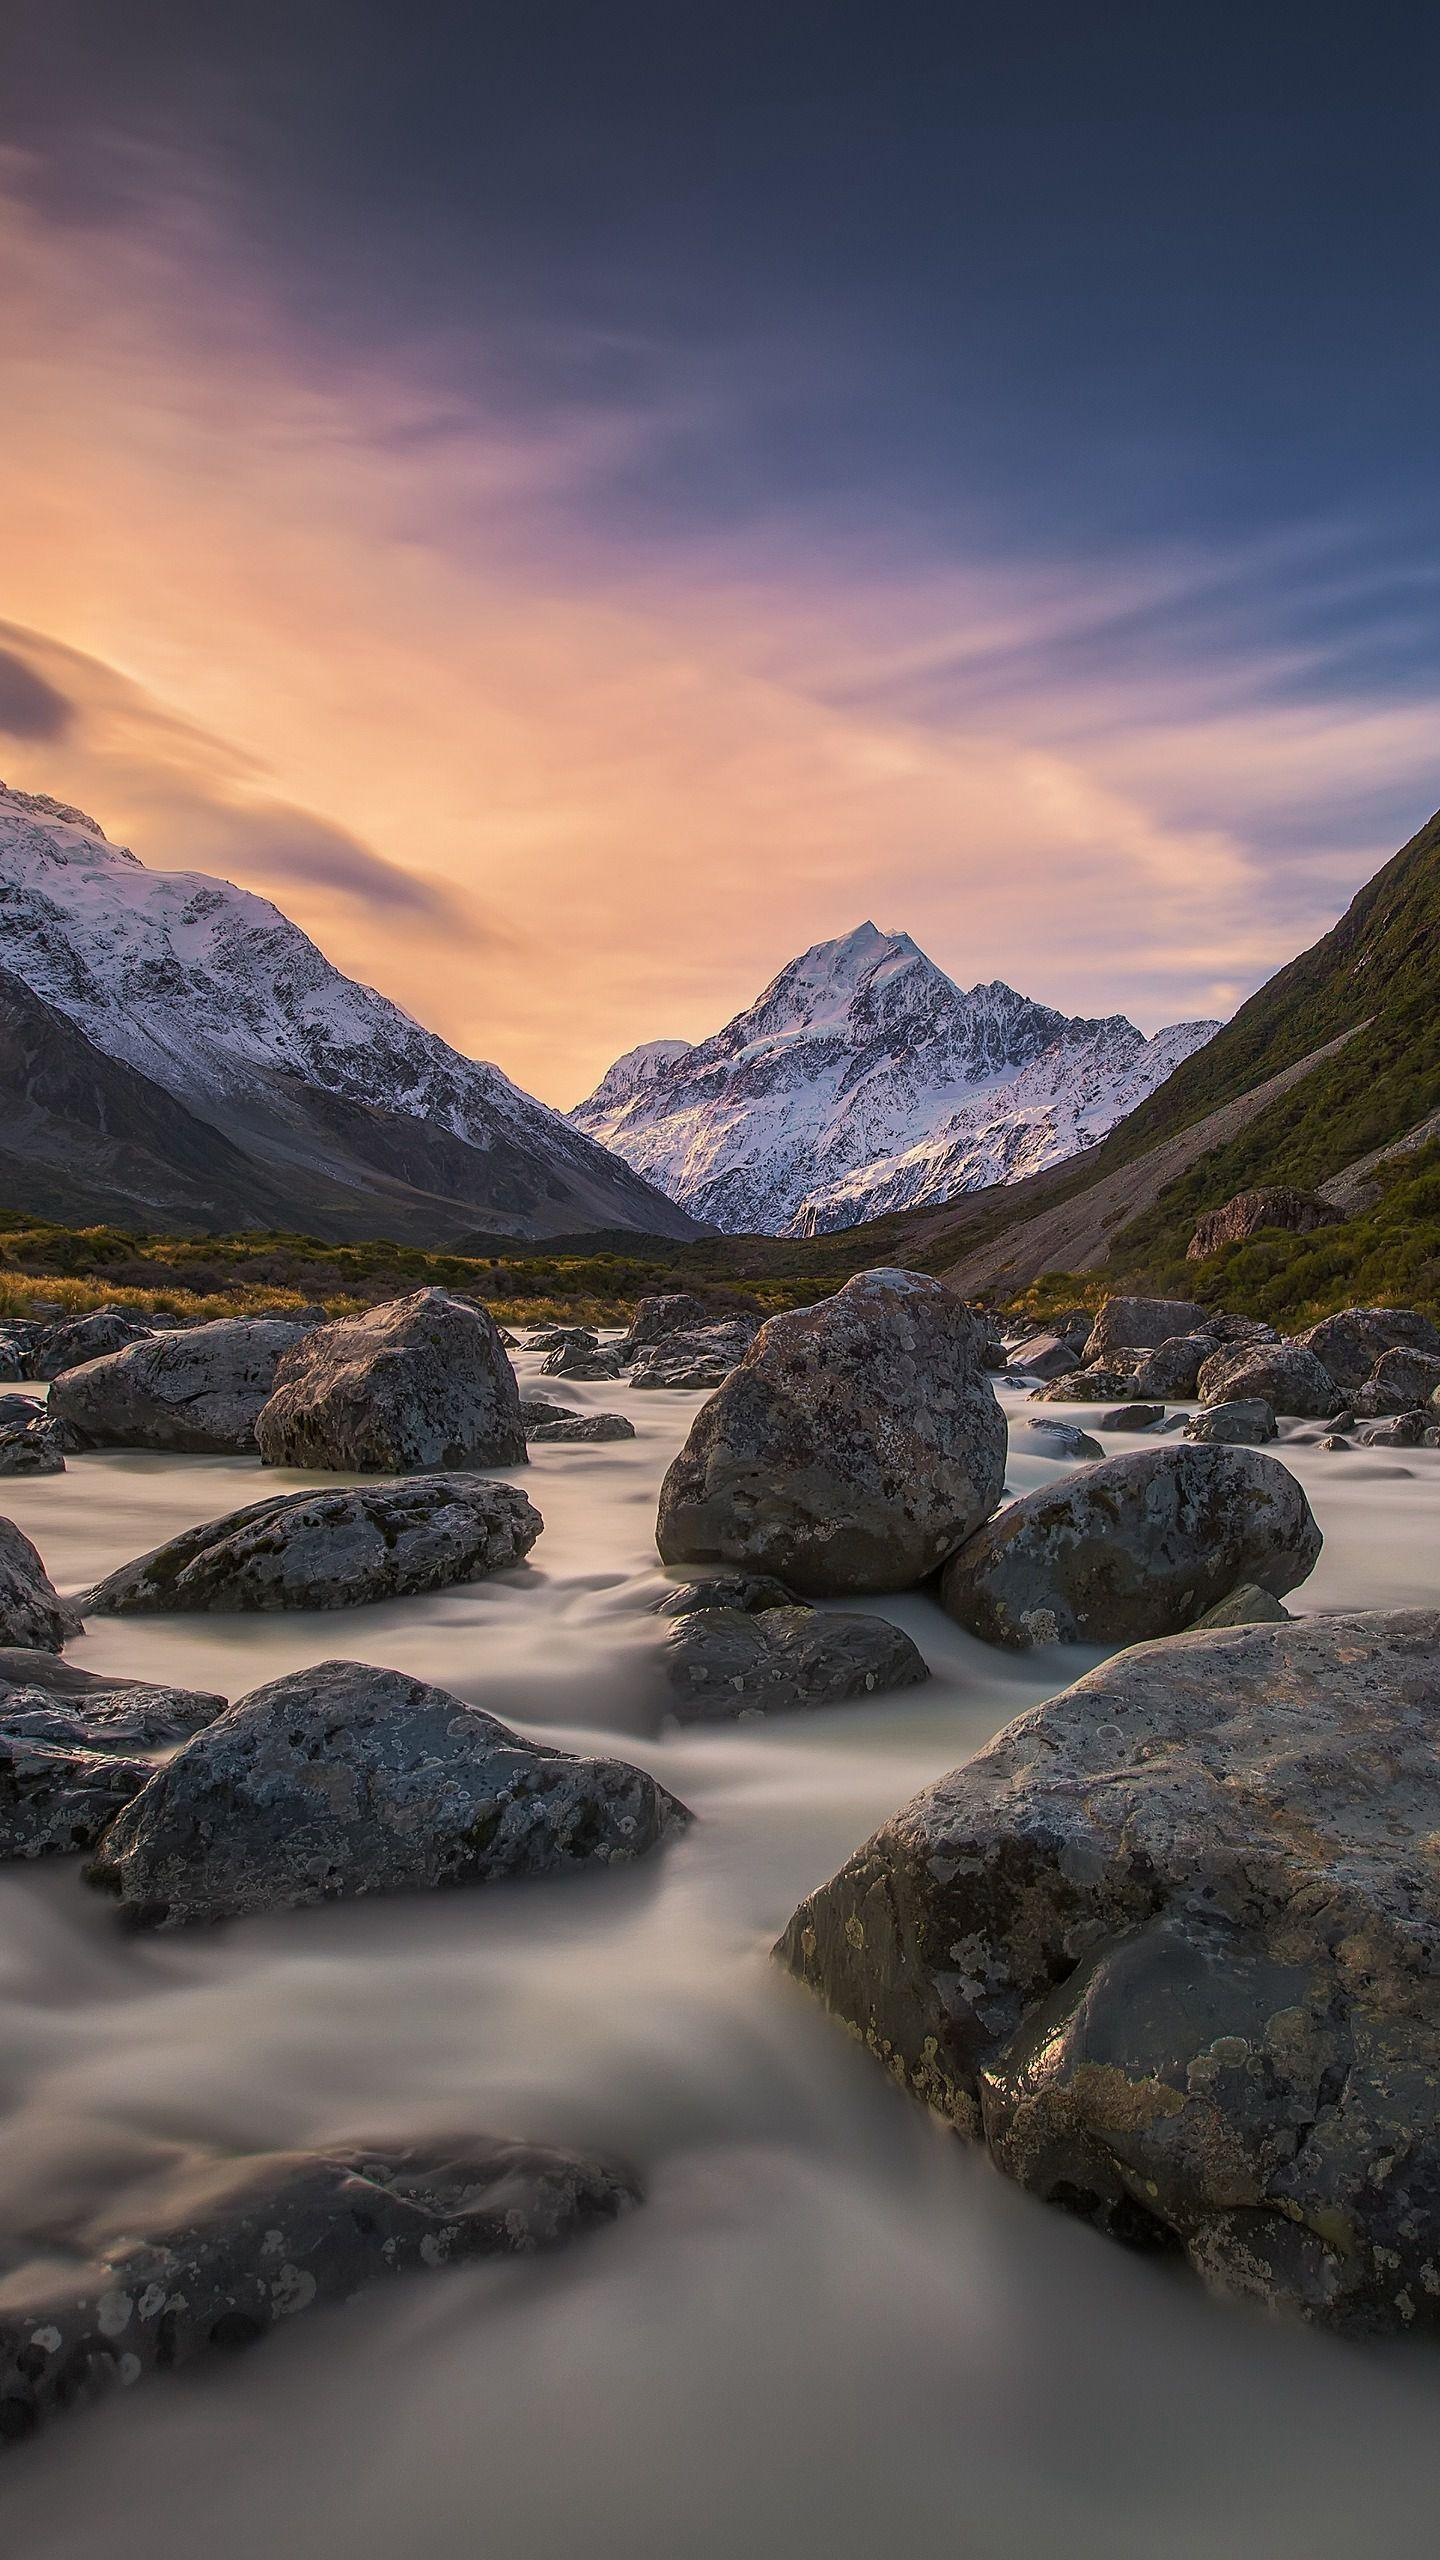 New Zealand Ridge: Mount Cook. As one of the locations for the film Lord of the Rings, Mount Cook is stationed in the middle of the South Island and attracts countless visitors.